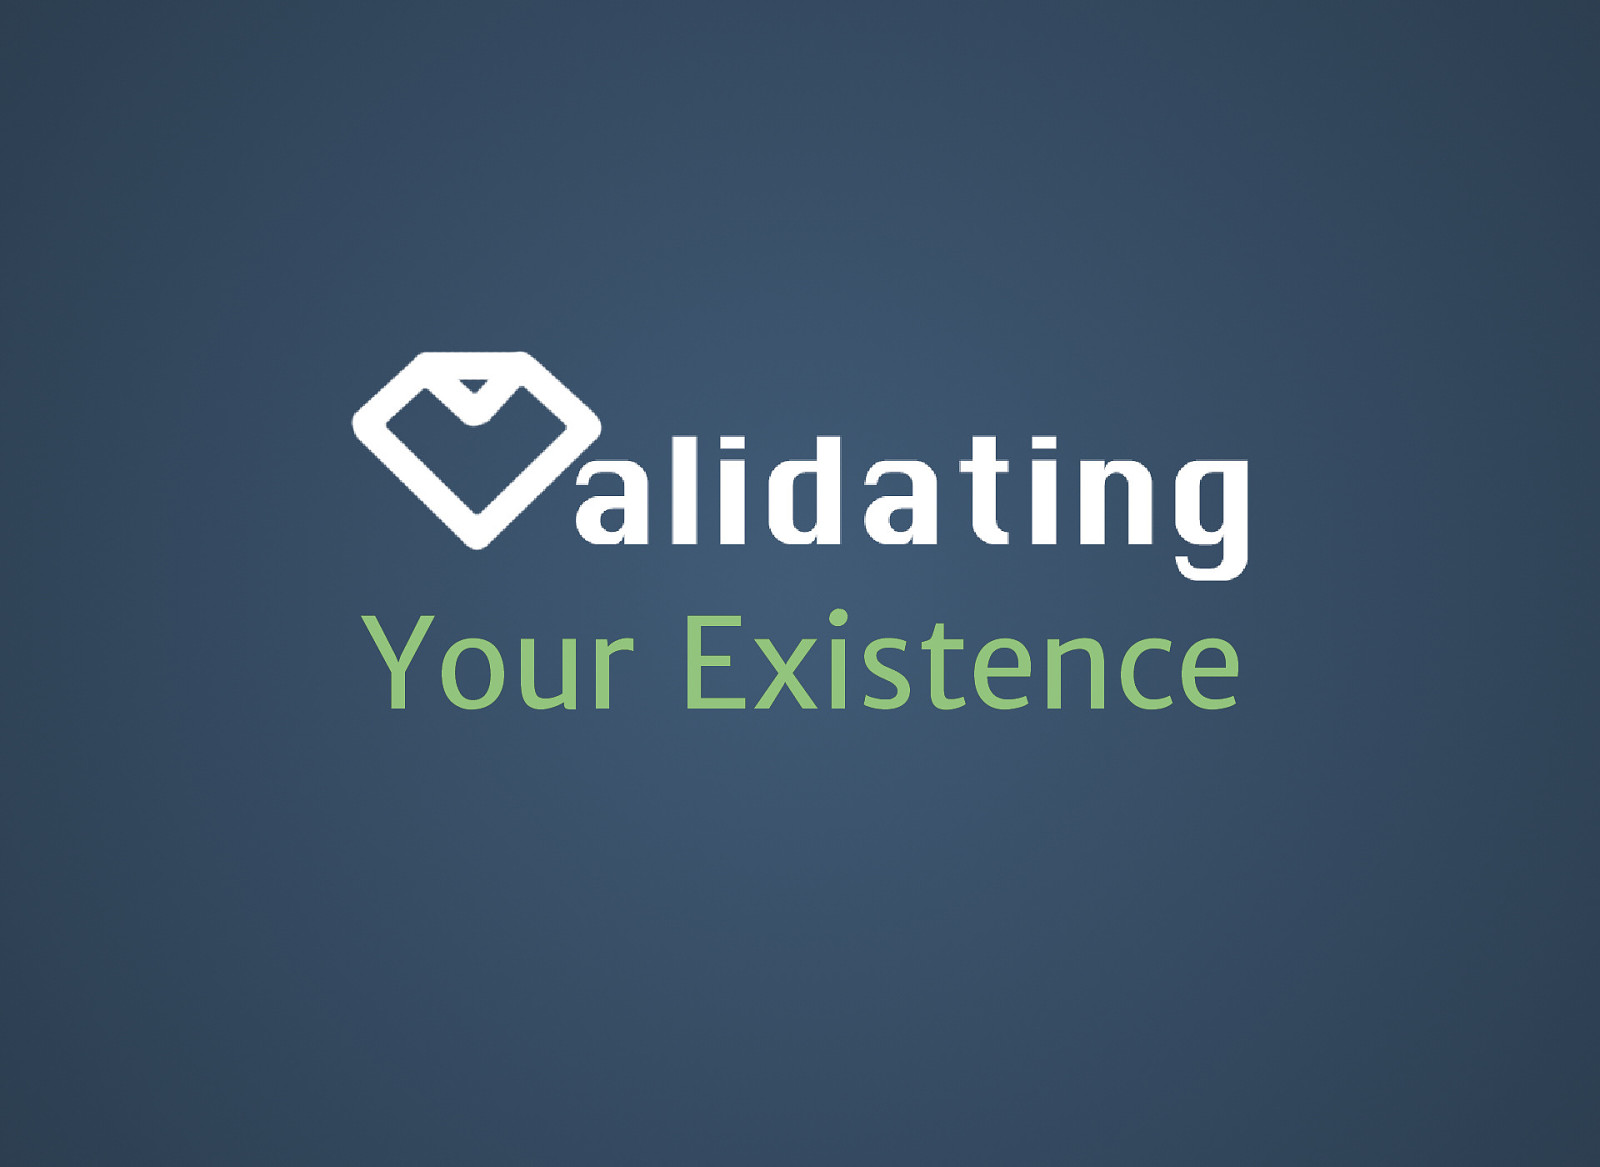 Validating Your Existence